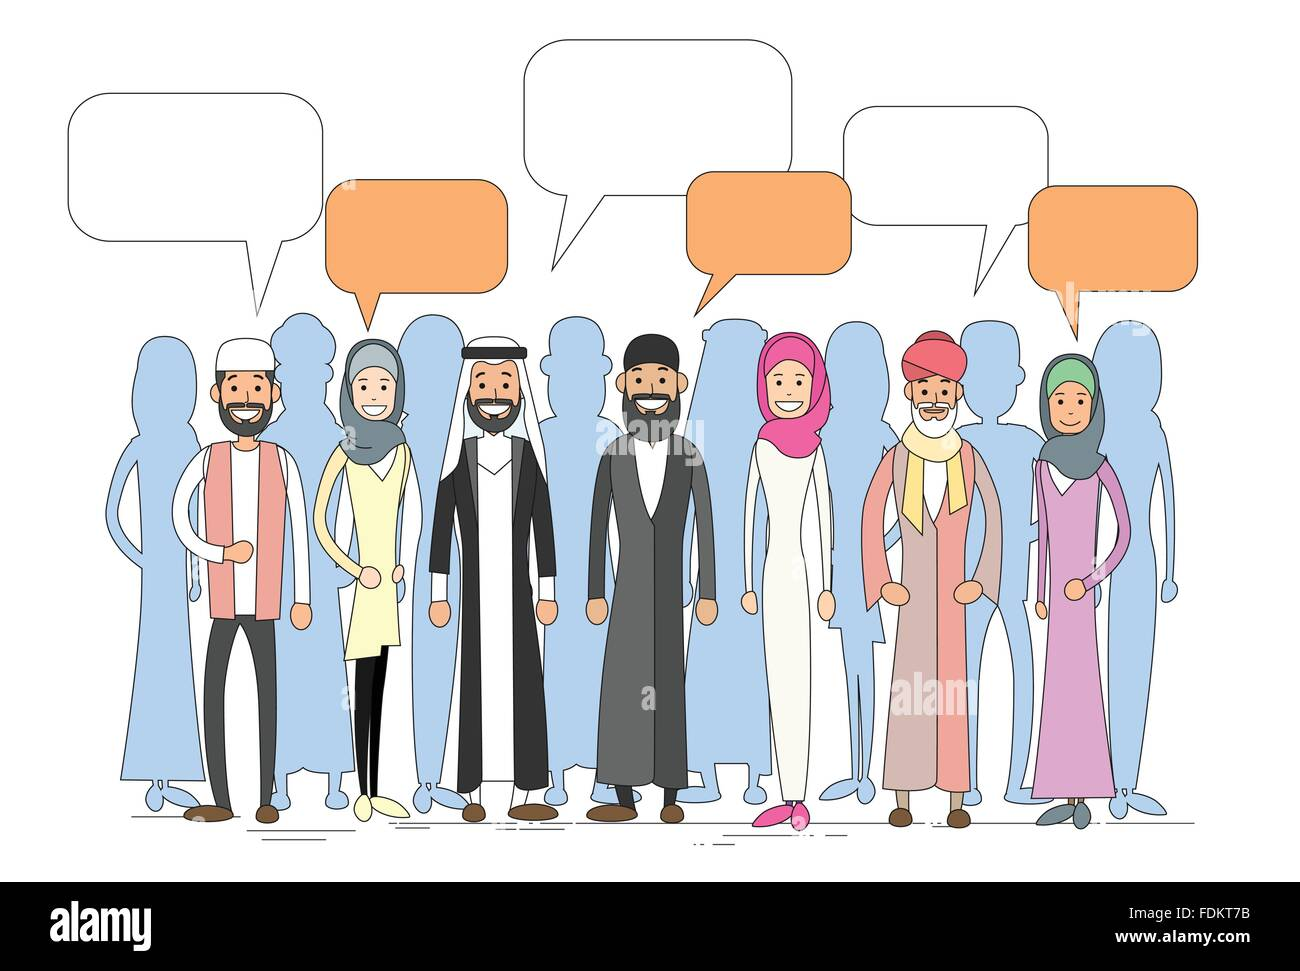 Muslim People Group Talking Discussing Chat Communication Social Network Man and Woman Traditional Clothes - Stock Image